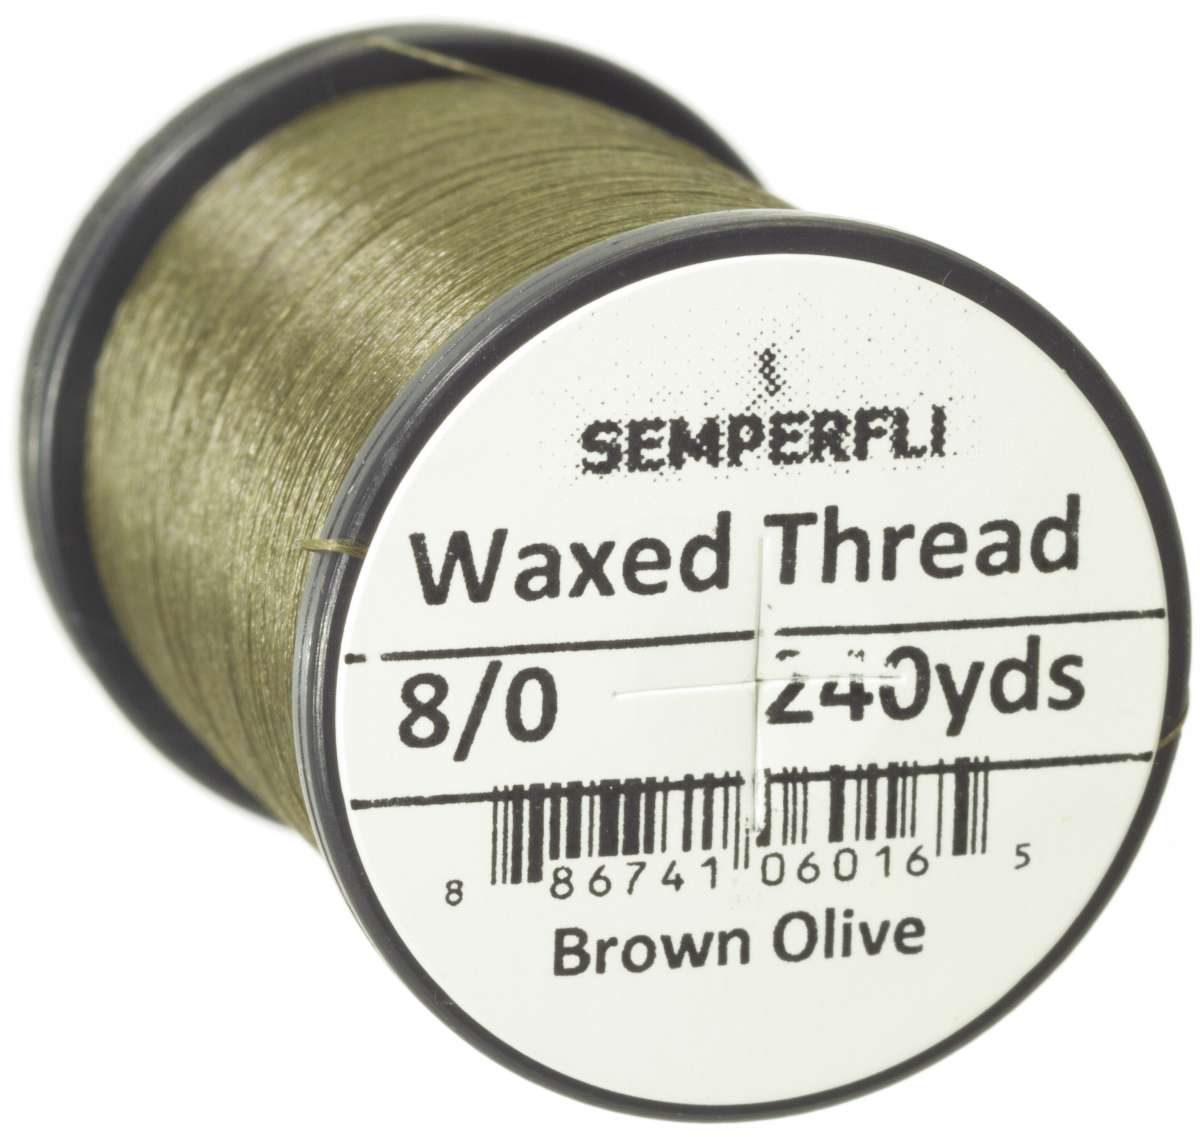 8/0 Classic Waxed Thread Brown Olive Sem-0400-1324